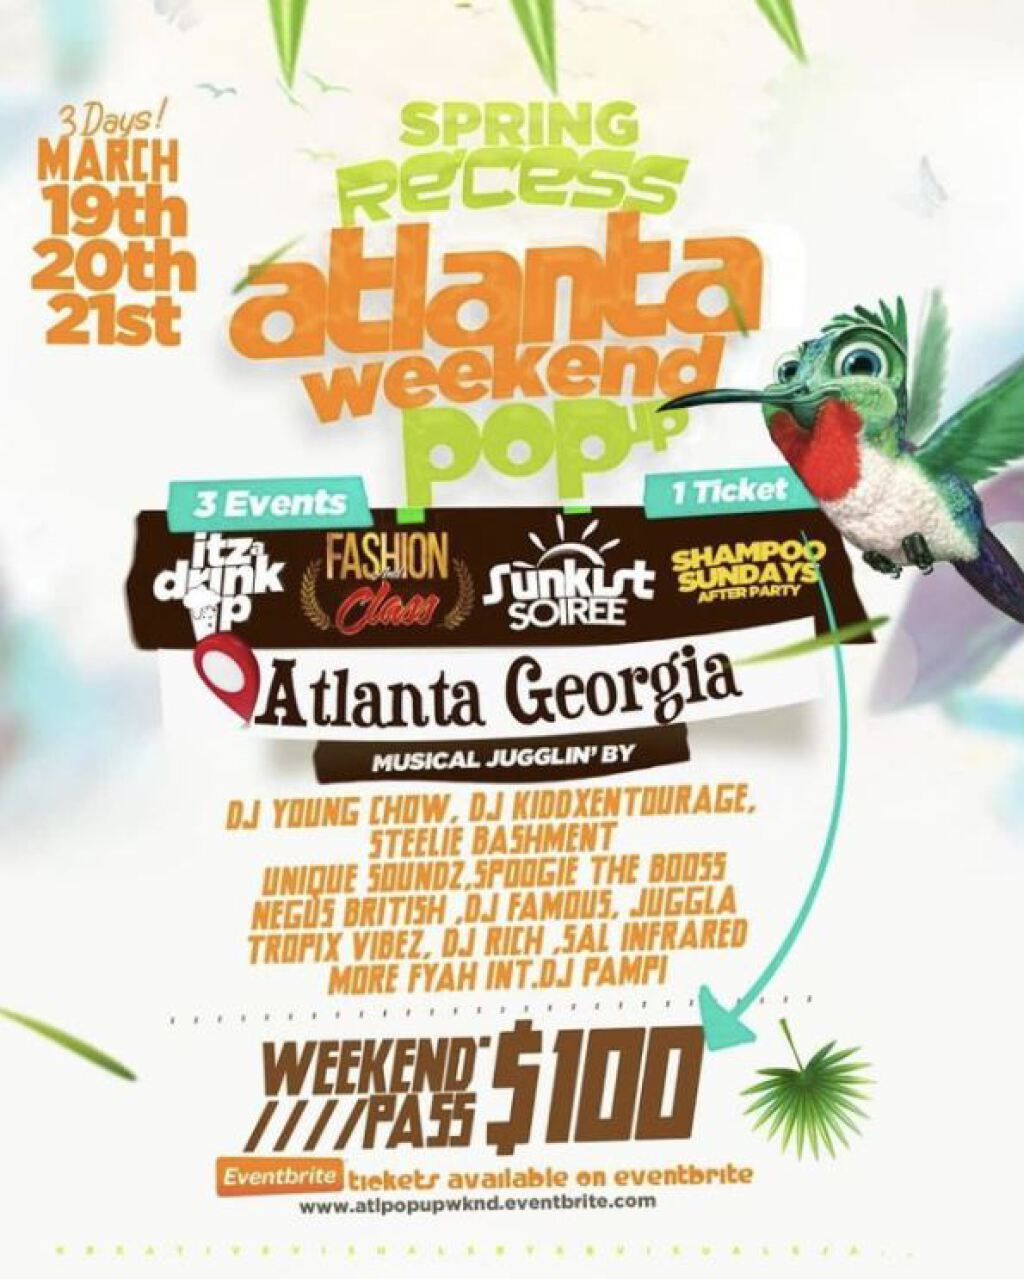 Spring Recess Atlanta Pop up Weekend- Day 3 flyer or graphic.